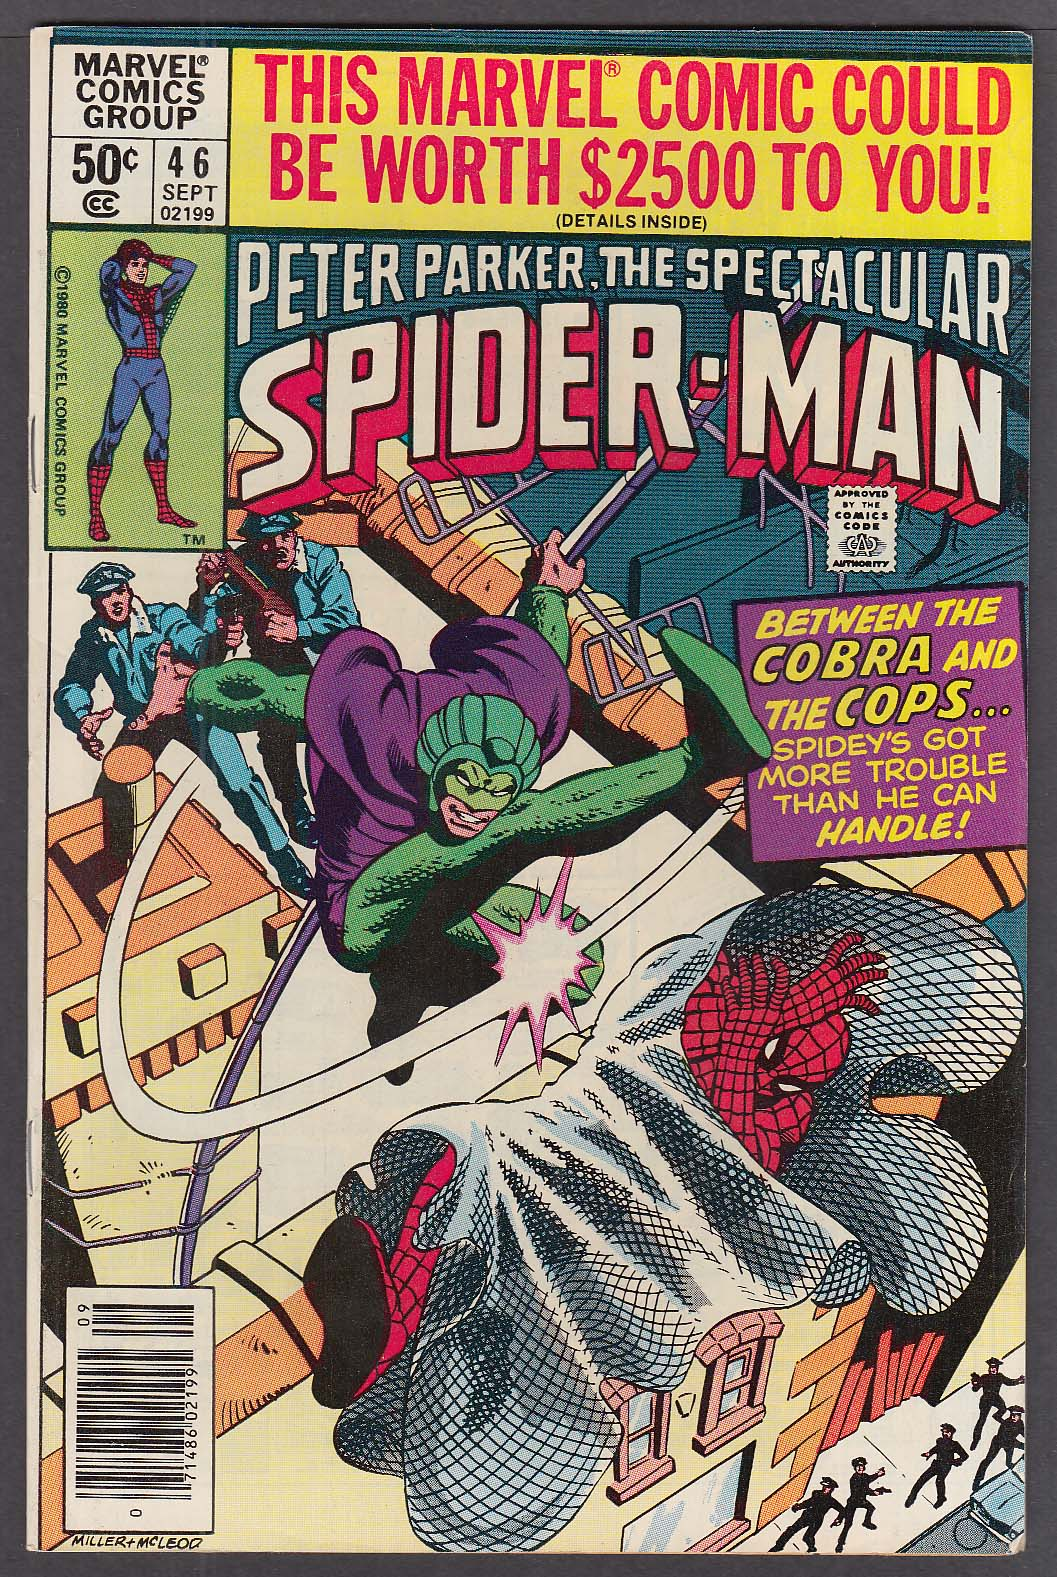 PETER PARKER SPECTACULAR SPIDER-MAN #46 Marvel comic book 9 1980